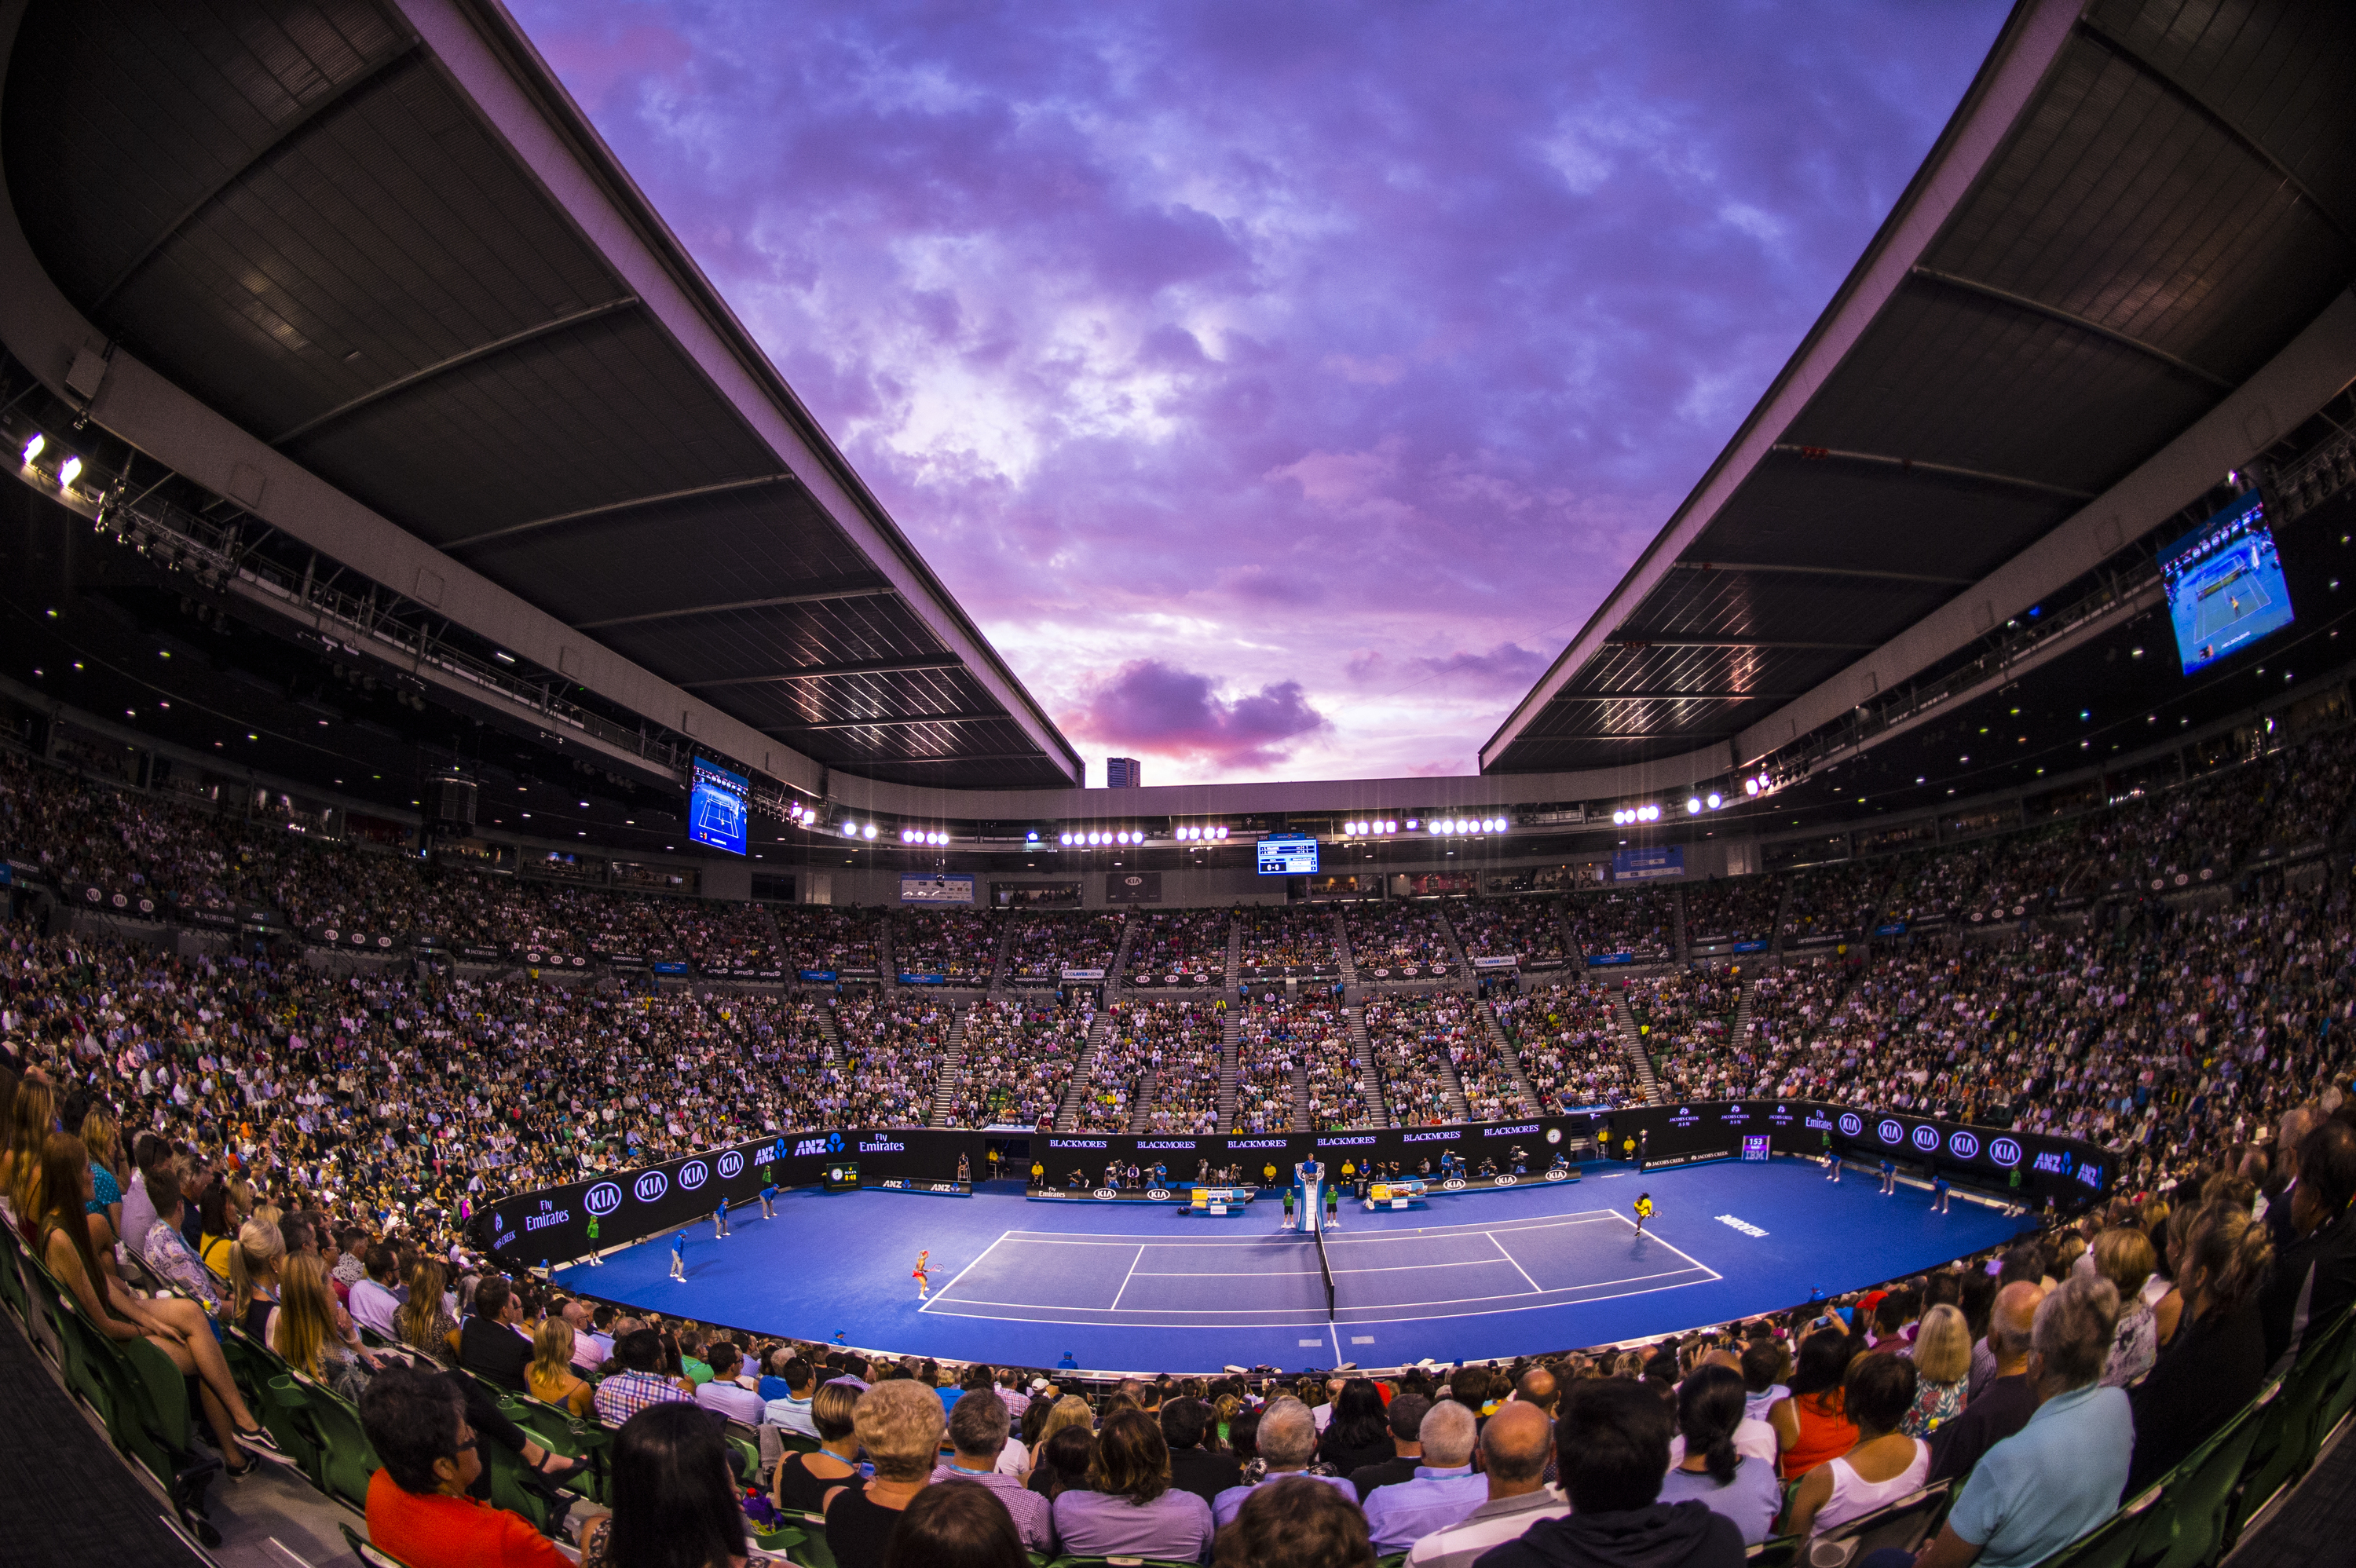 The Australian Open is here